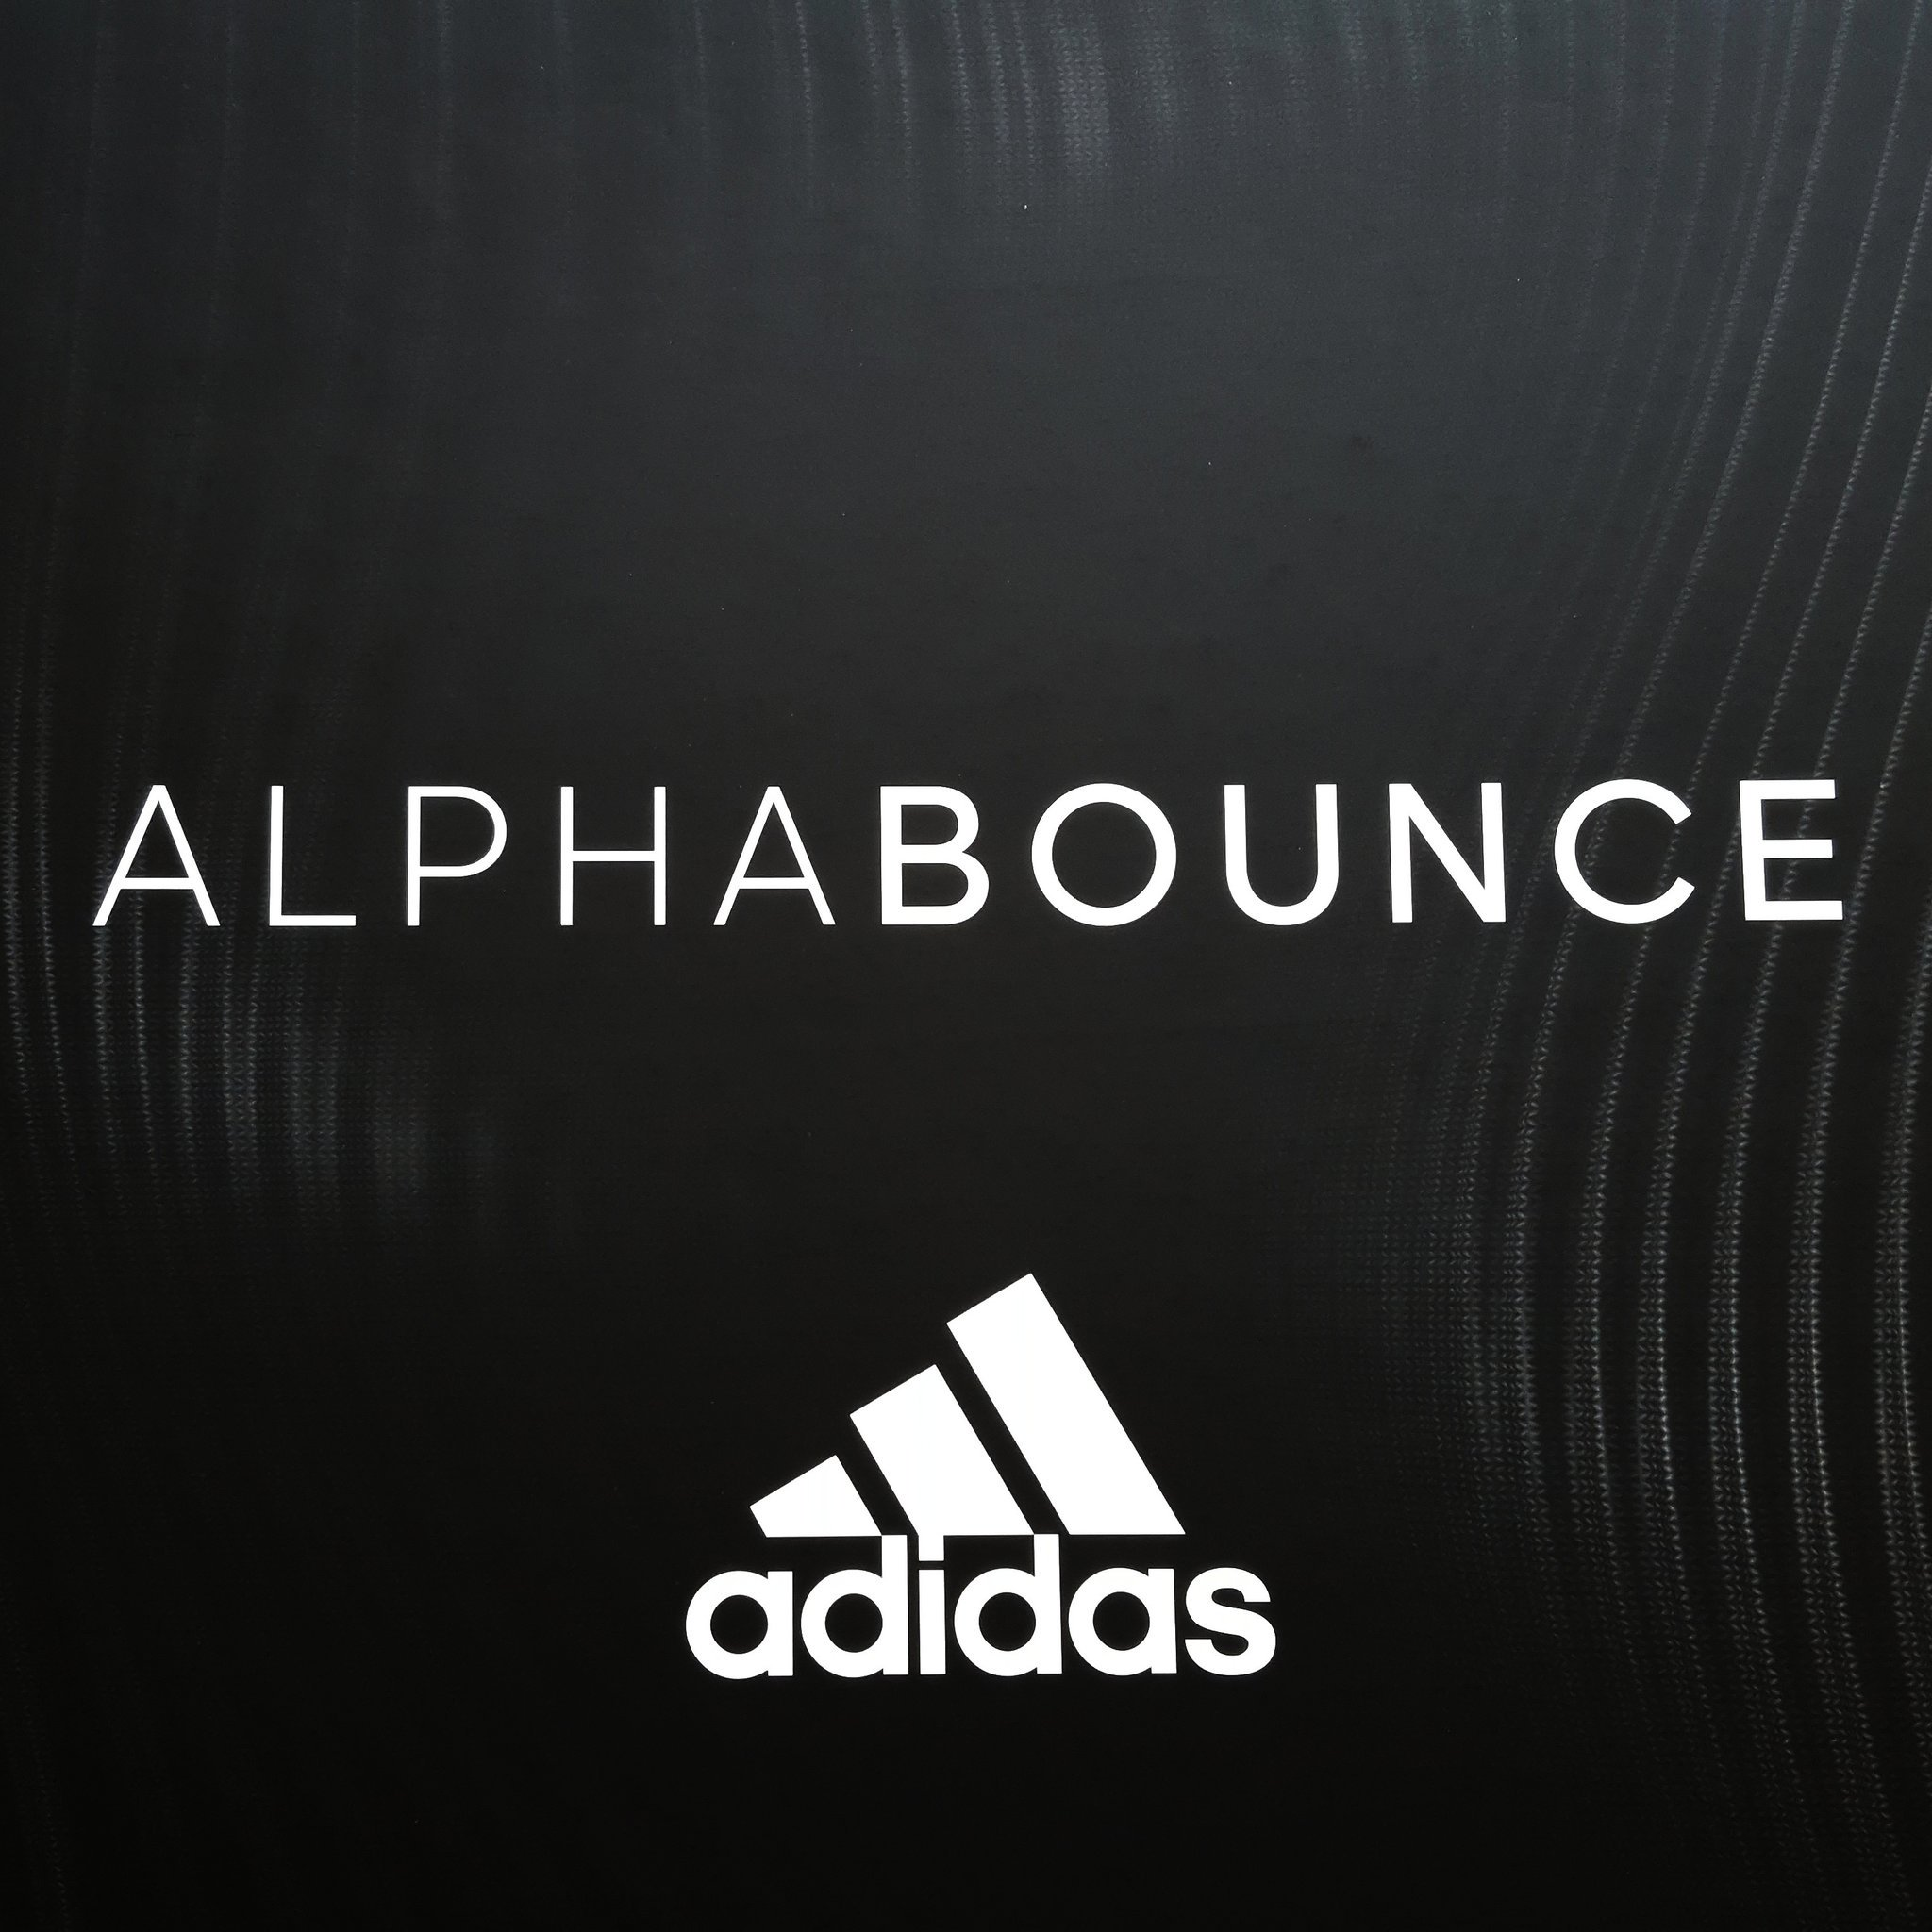 b3ec12b1c Special Delivery  The adidas AlphaBOUNCE Promo - Hardwood and Hollywood